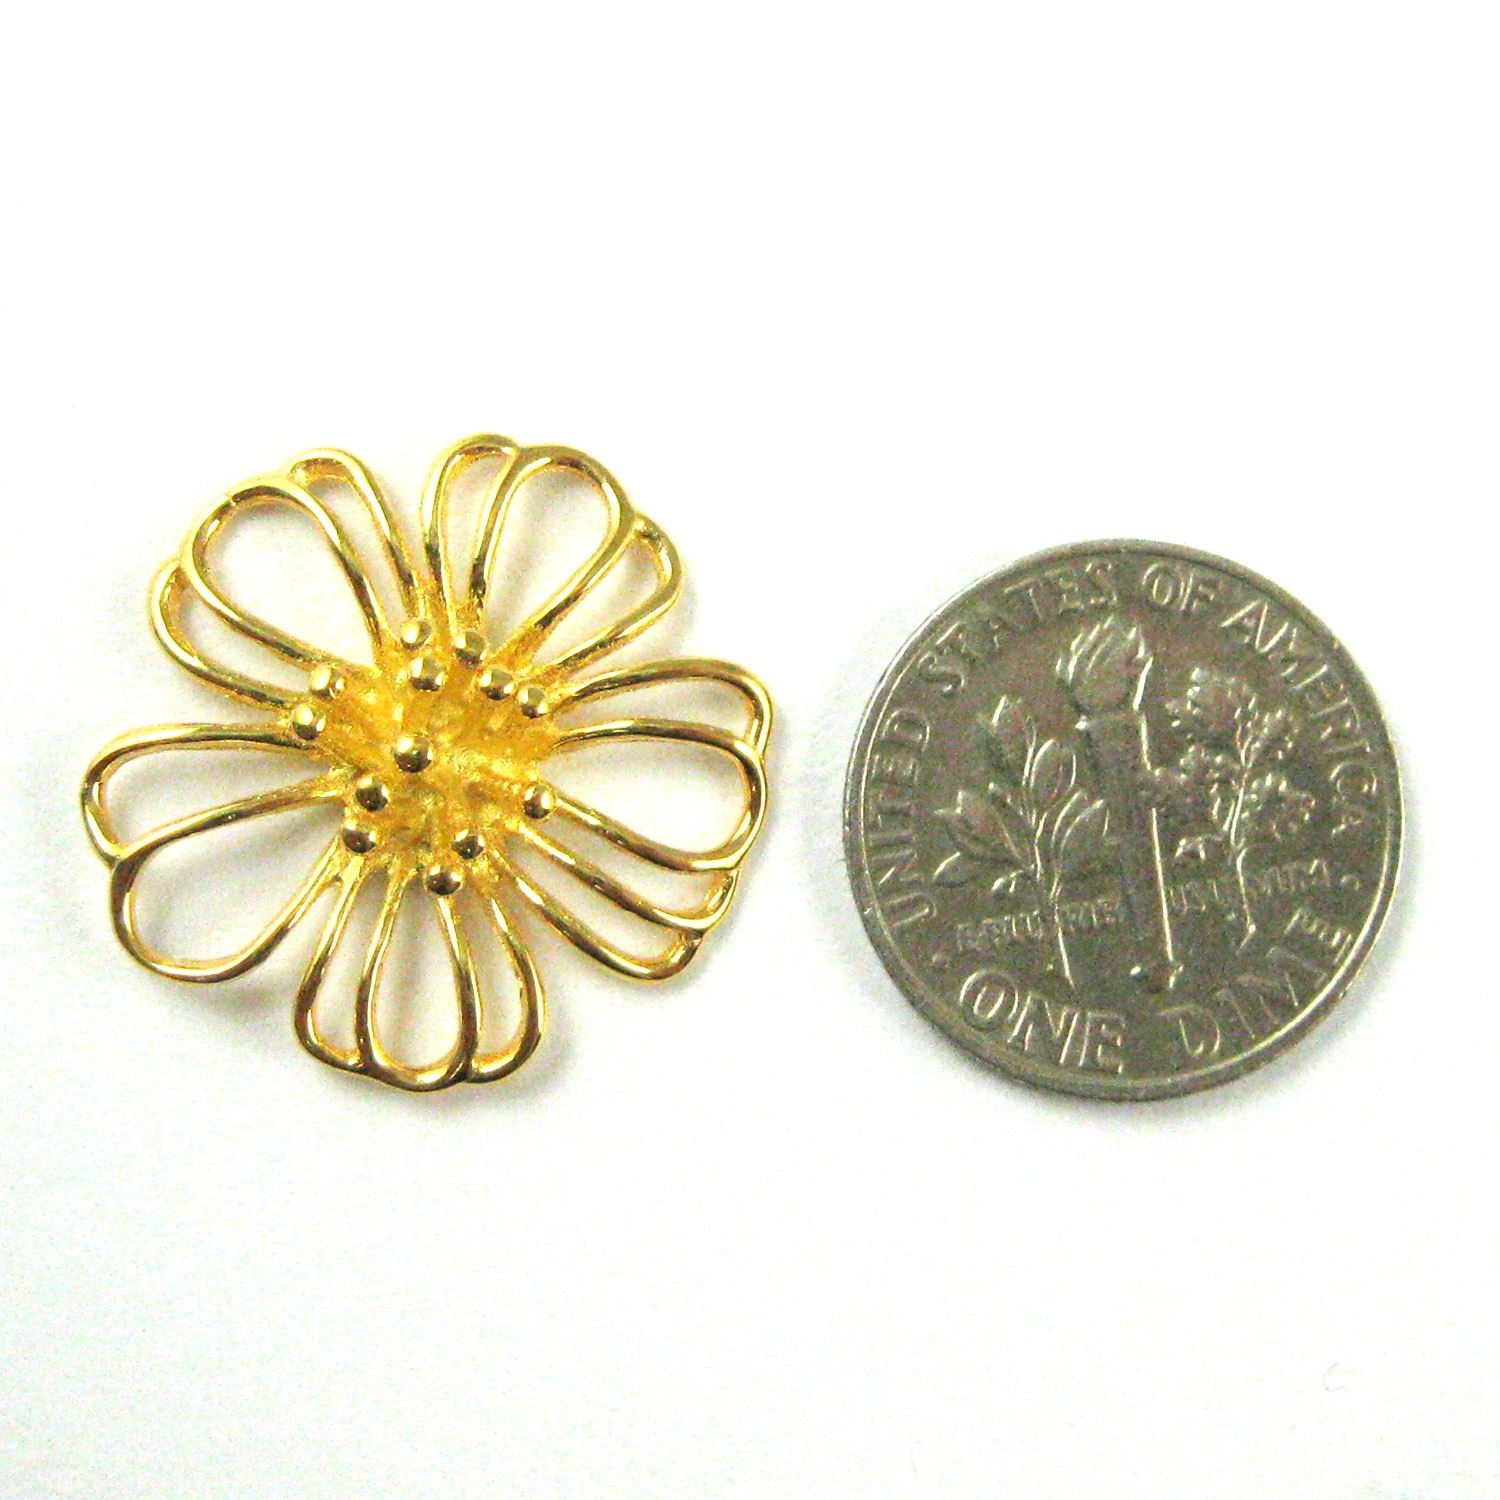 22K Gold plated 925 Sterling Silver Charm-Large Flower Charm Connector -Gold Vermeil Buttercup Flower Pendant- 20mm (1 pc)